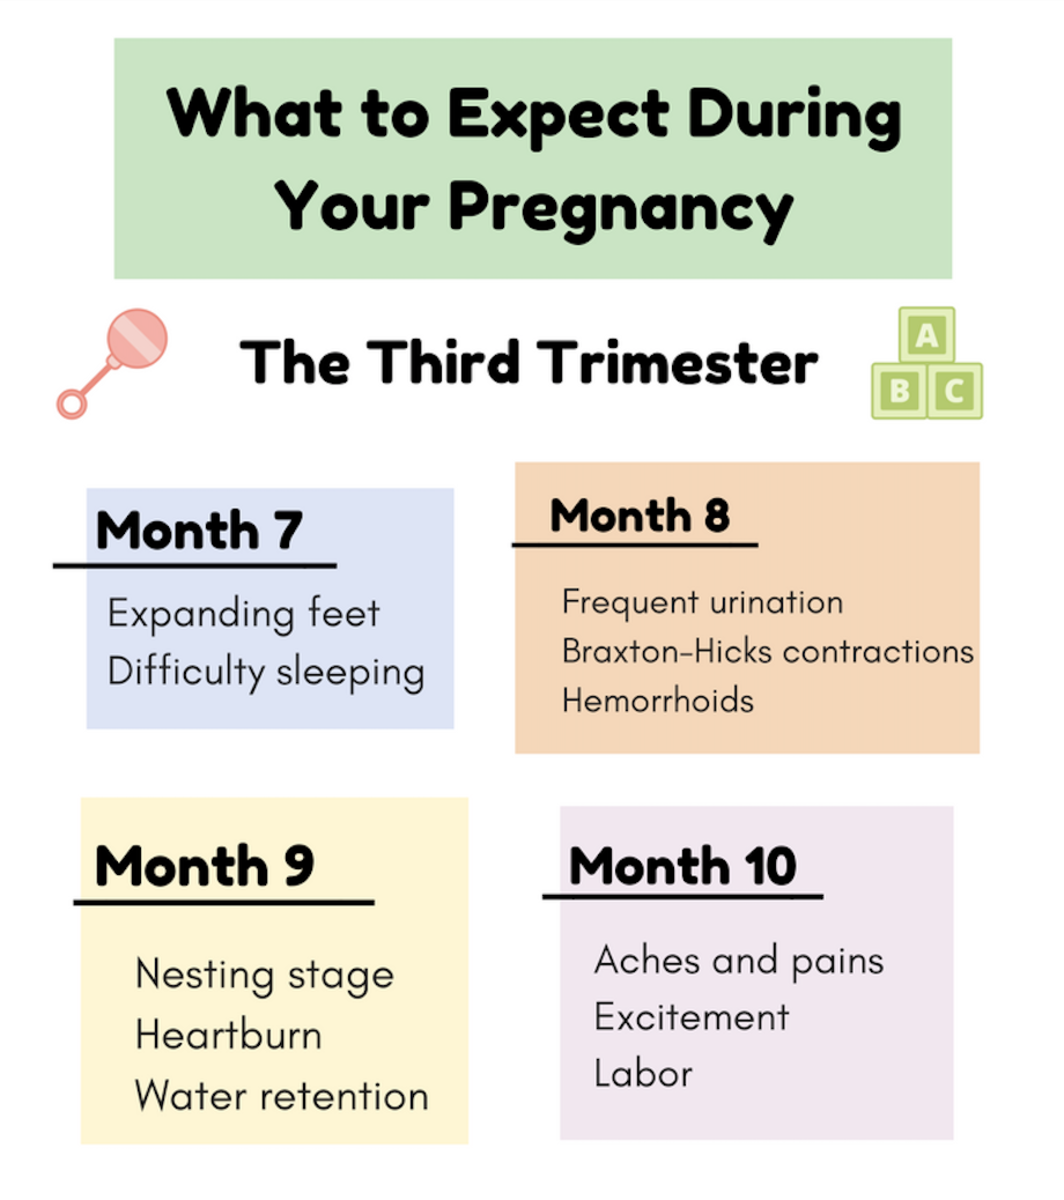 What to Expect During Your Pregnancy During the Third Trimester